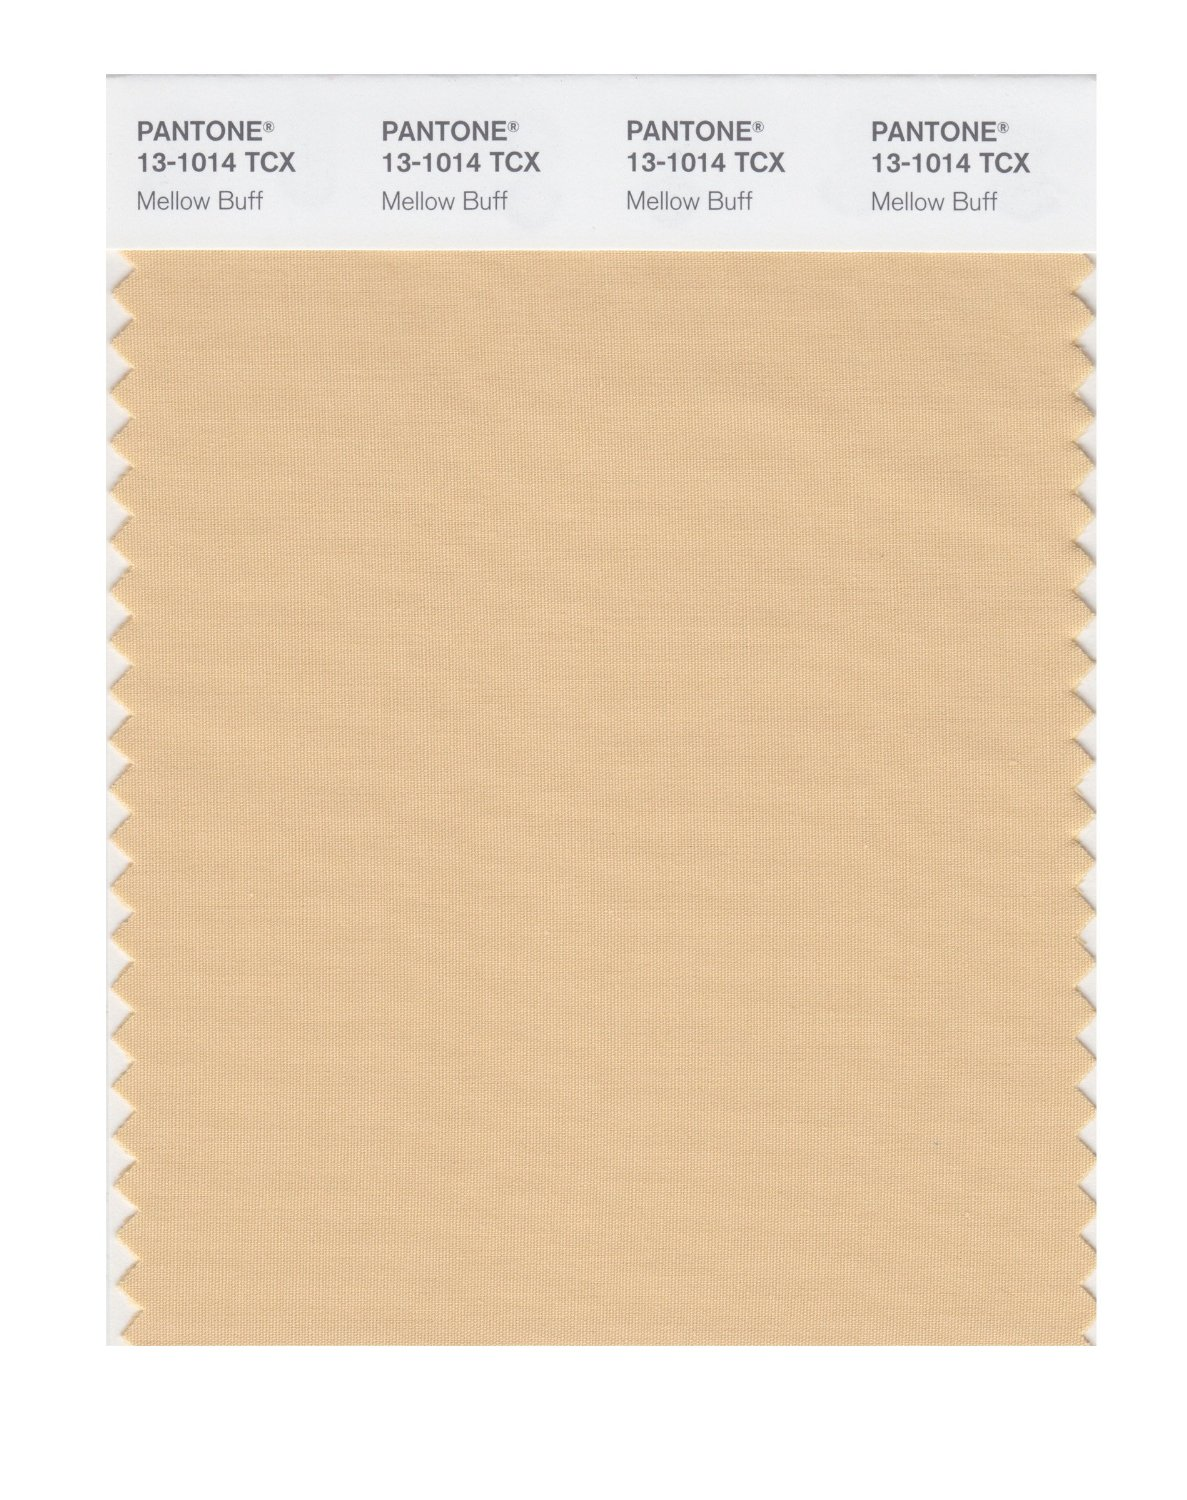 Pantone Smart Swatch 13-1014 Mellow Buff